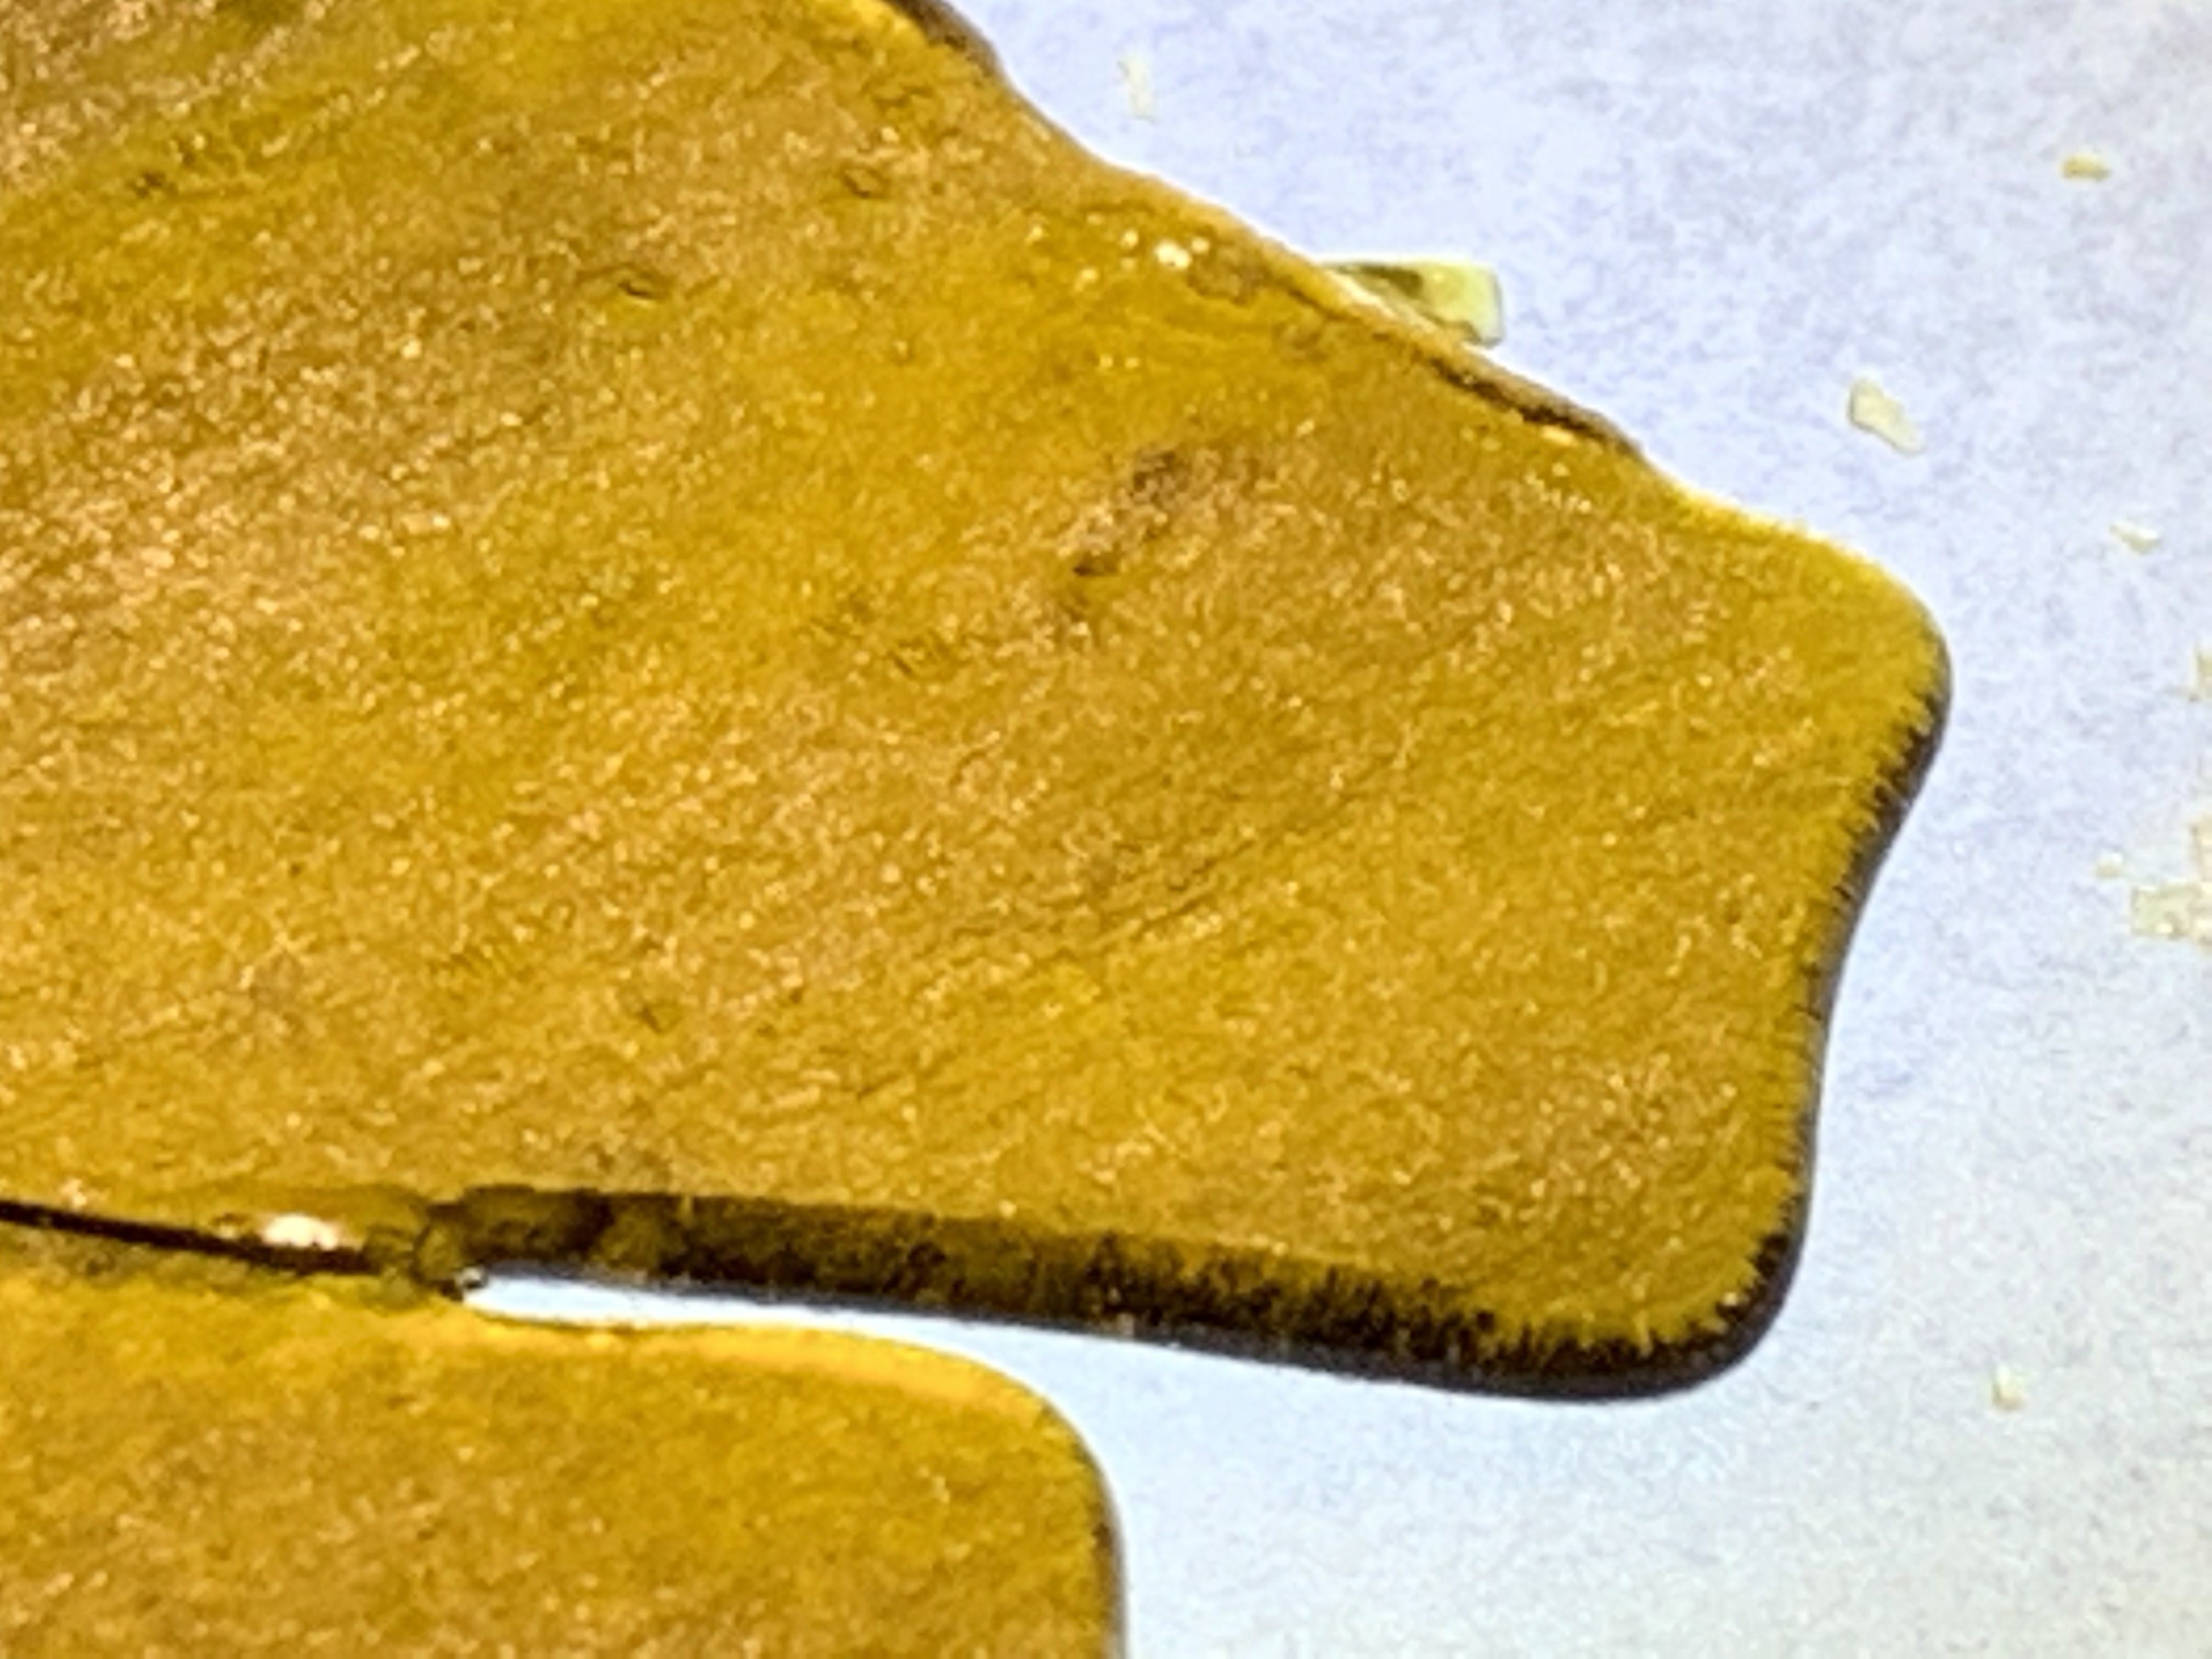 marijuana-dispensaries-4417-nw-39th-st-oklahoma-city-shatter-lemon-diesel-indica-hybrid-limited-supply-call-for-availability